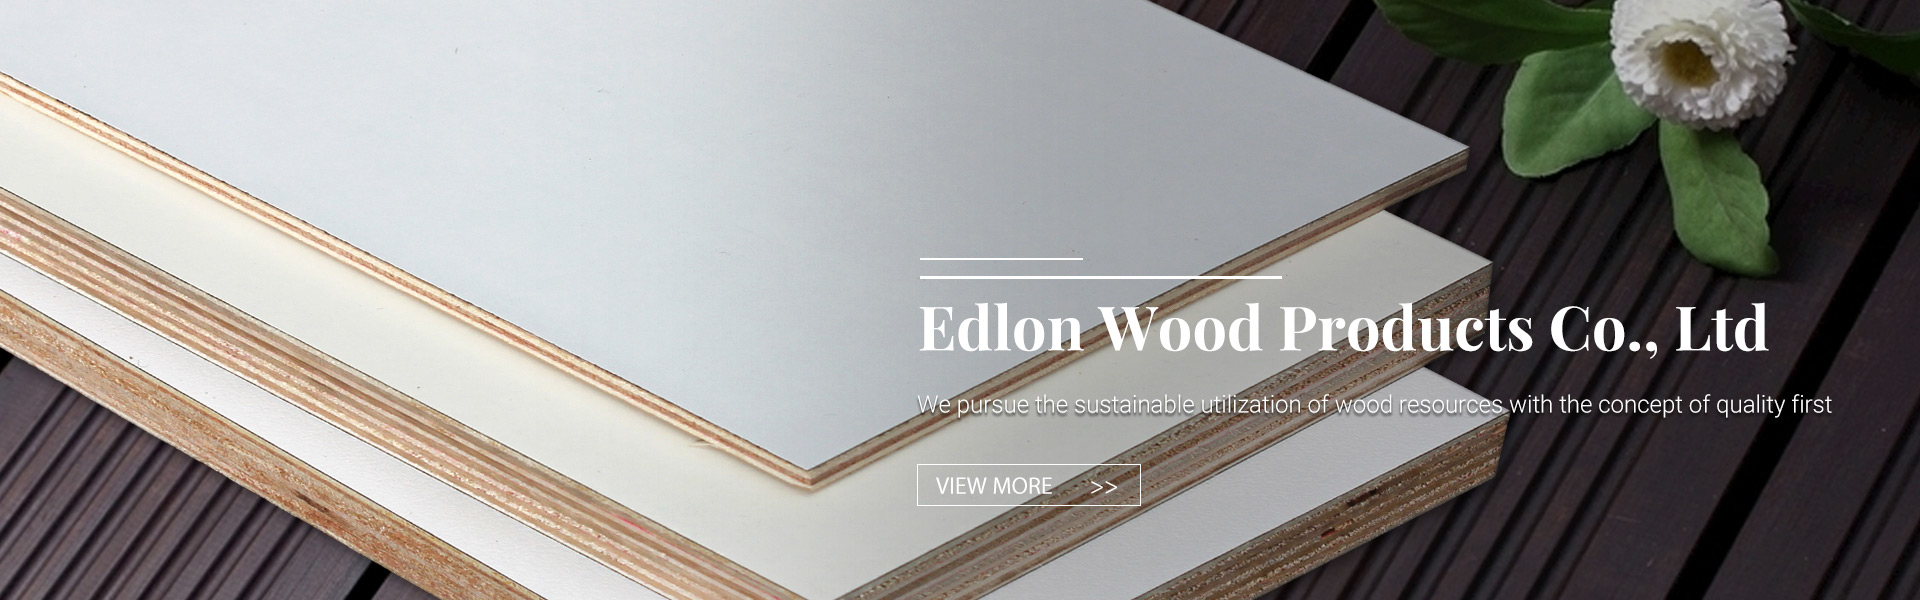 Edlon Wood Products Co., Ltd.